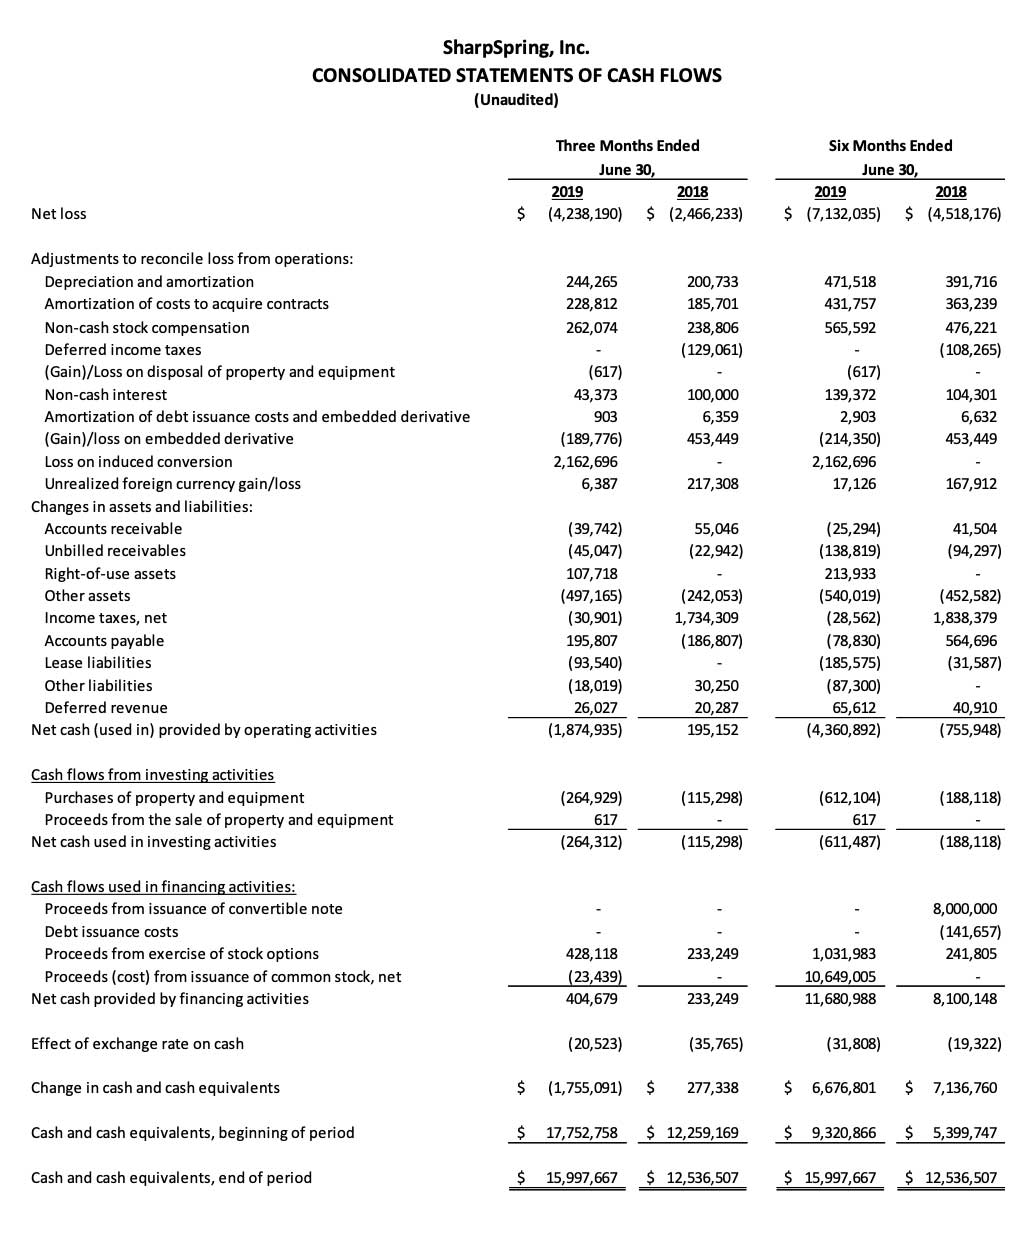 Consolidated-Statements-of-Cash-Flows